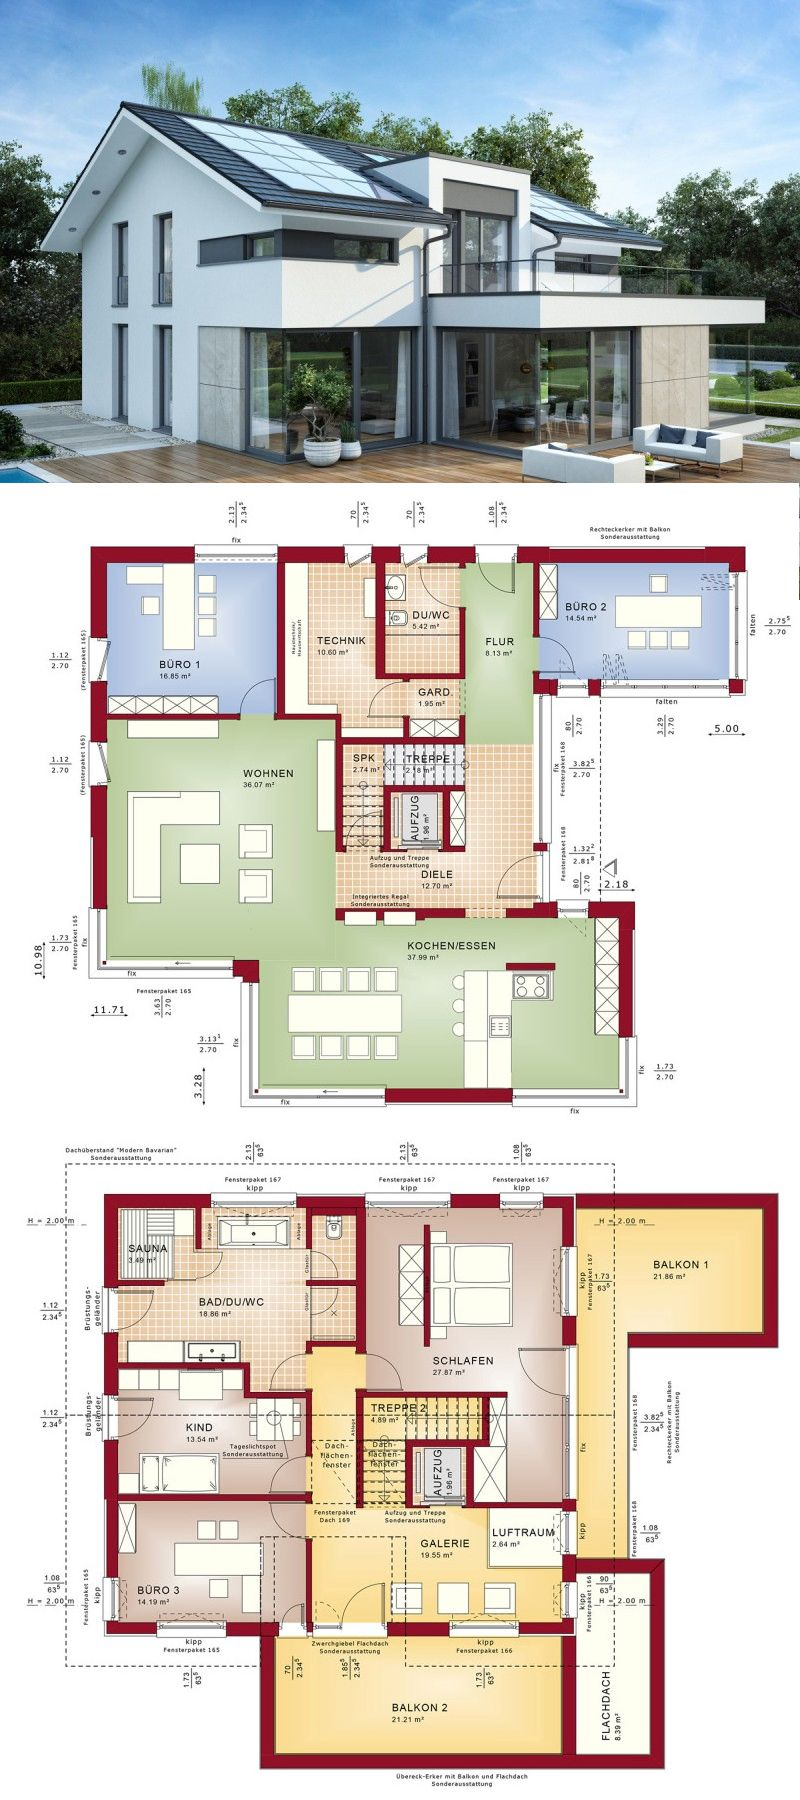 Two Storey Model House With Inspiring Perspective Architectural House Plans House Layout Plans Modern Style House Plans